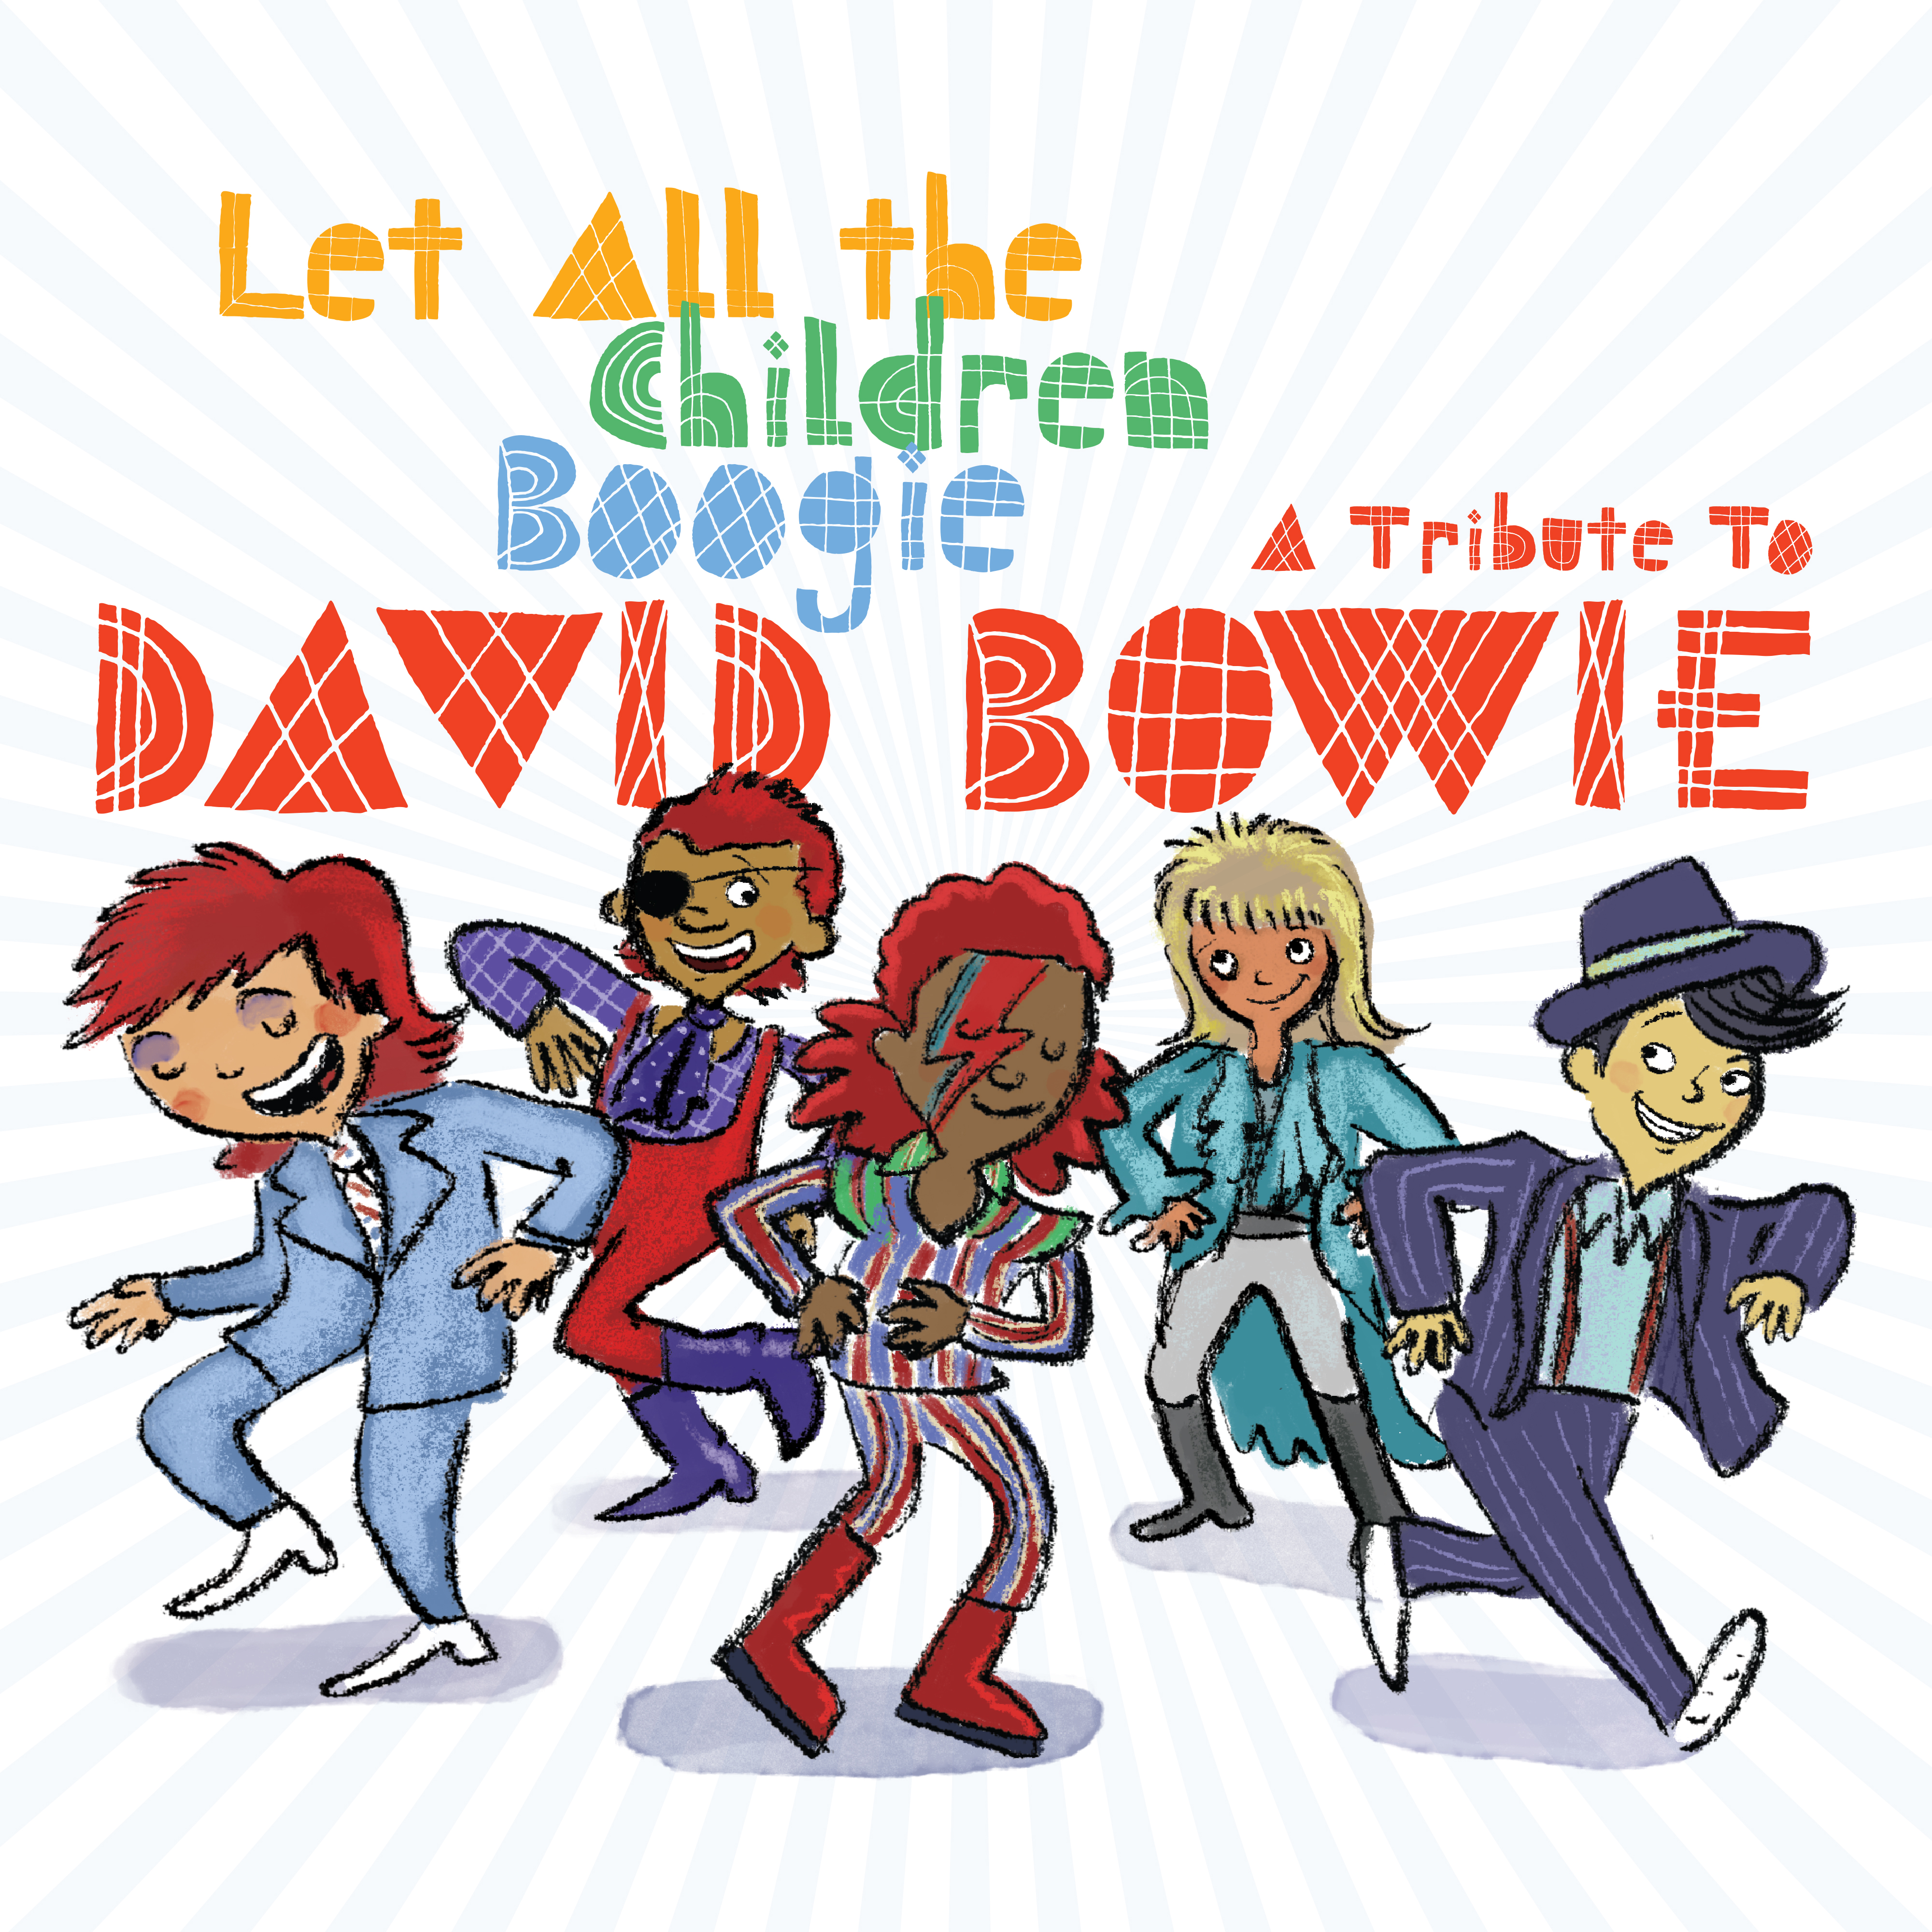 about let all the children boogie a tribute to david bowie